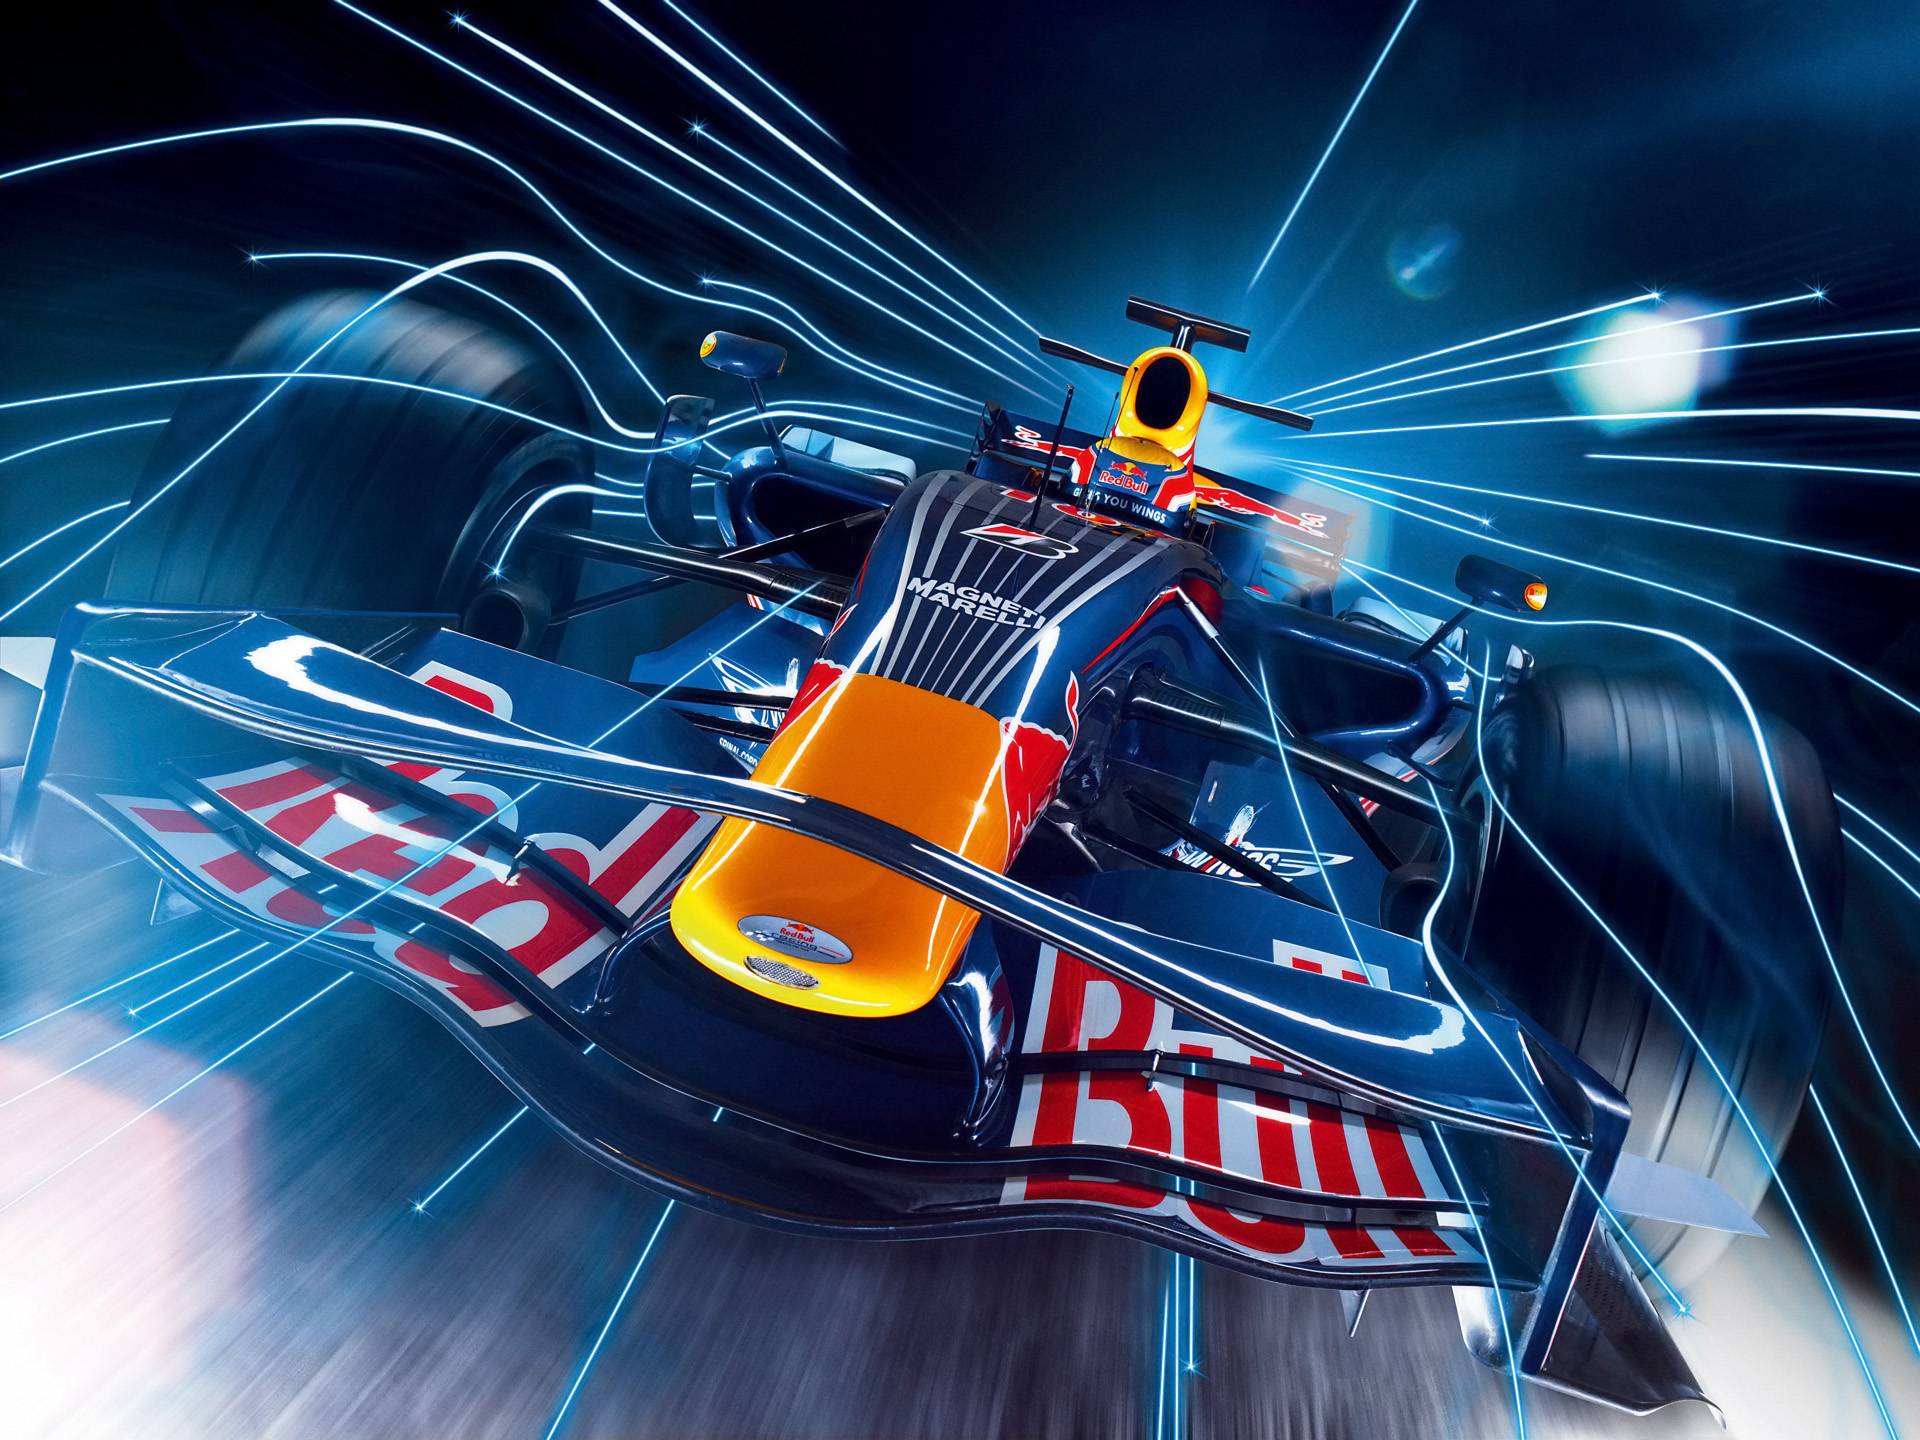 Red Bulls New Augmented Reality Racing App Also Boosts Sales